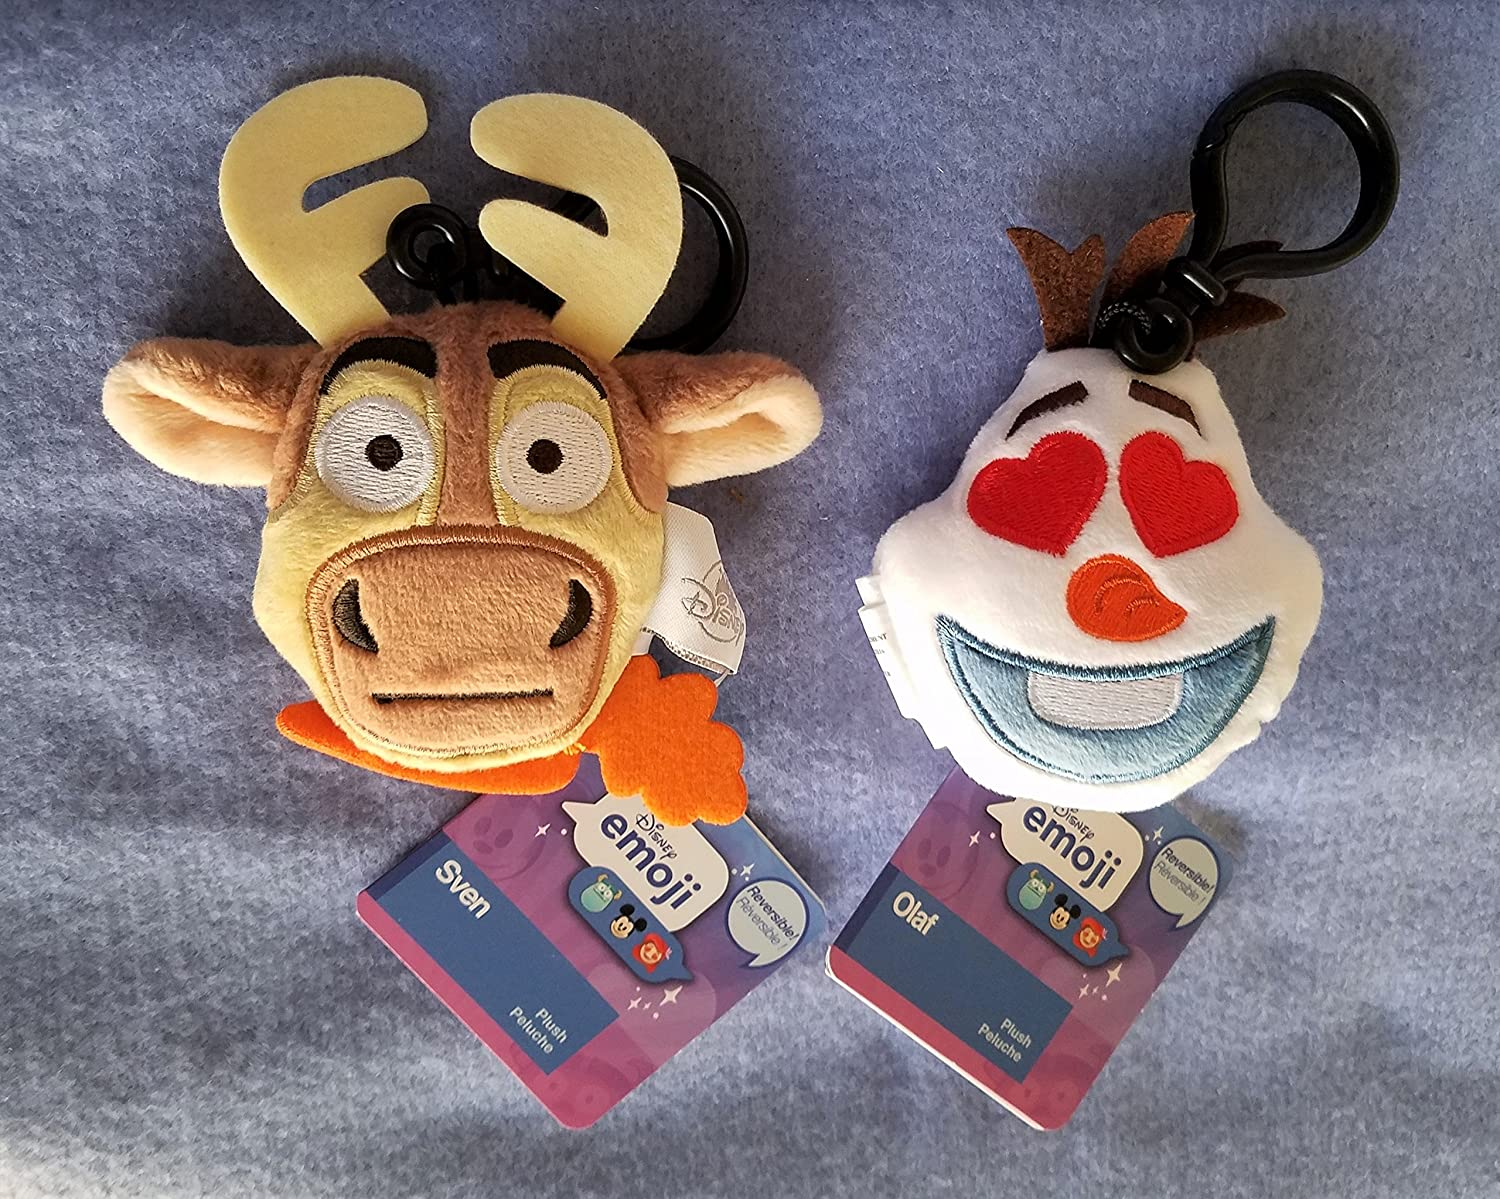 Amazon.com: Disney Frozen Reversible Plush Emoji Backpack Clip Keychain Set: Sven - Olaf: Toys & Games